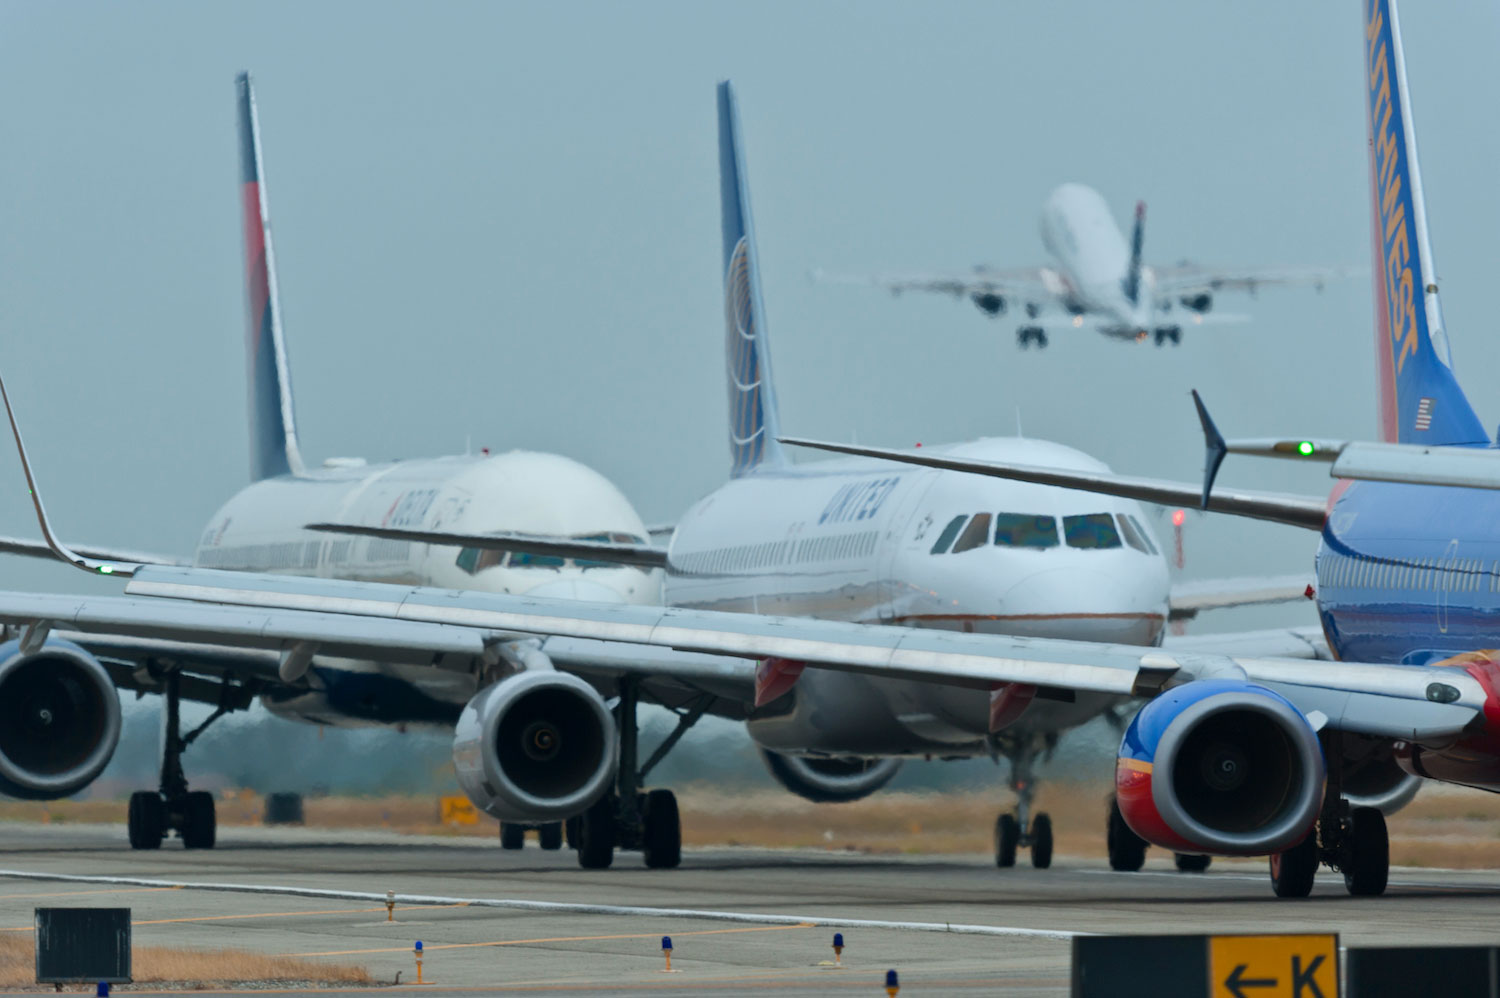 JWA commercial traffic jets